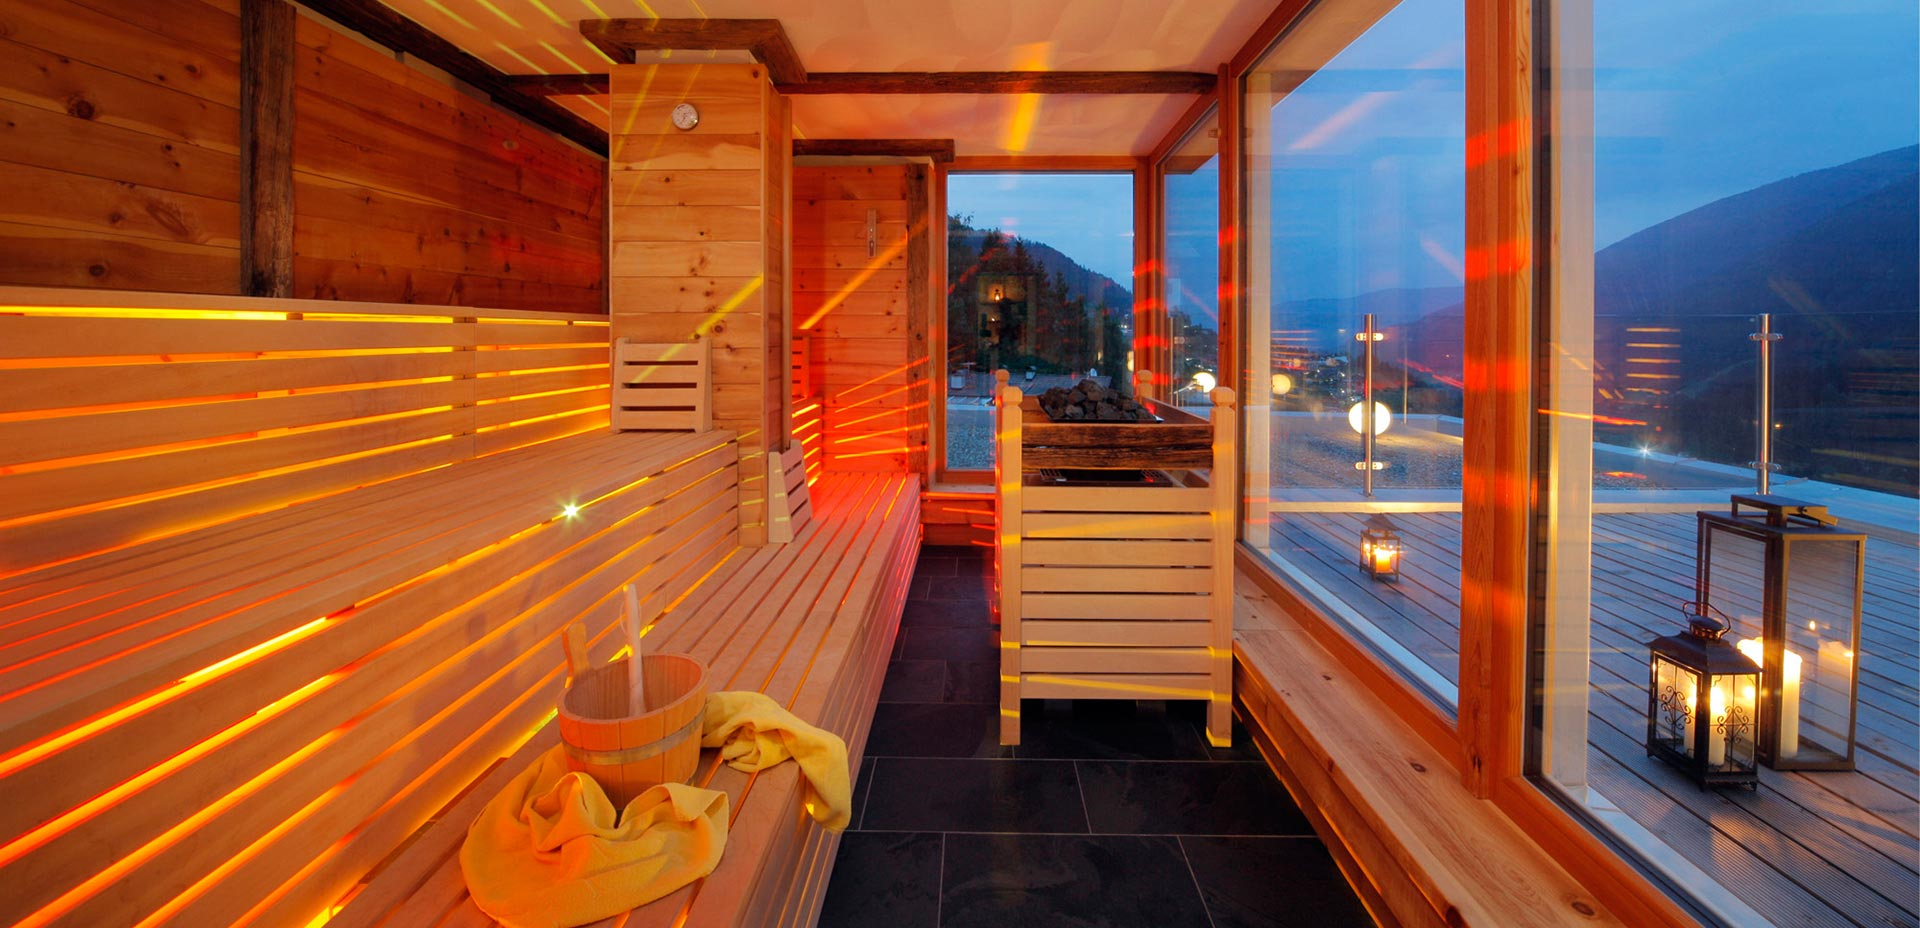 Finnish sauna with panoramic view of Ultental